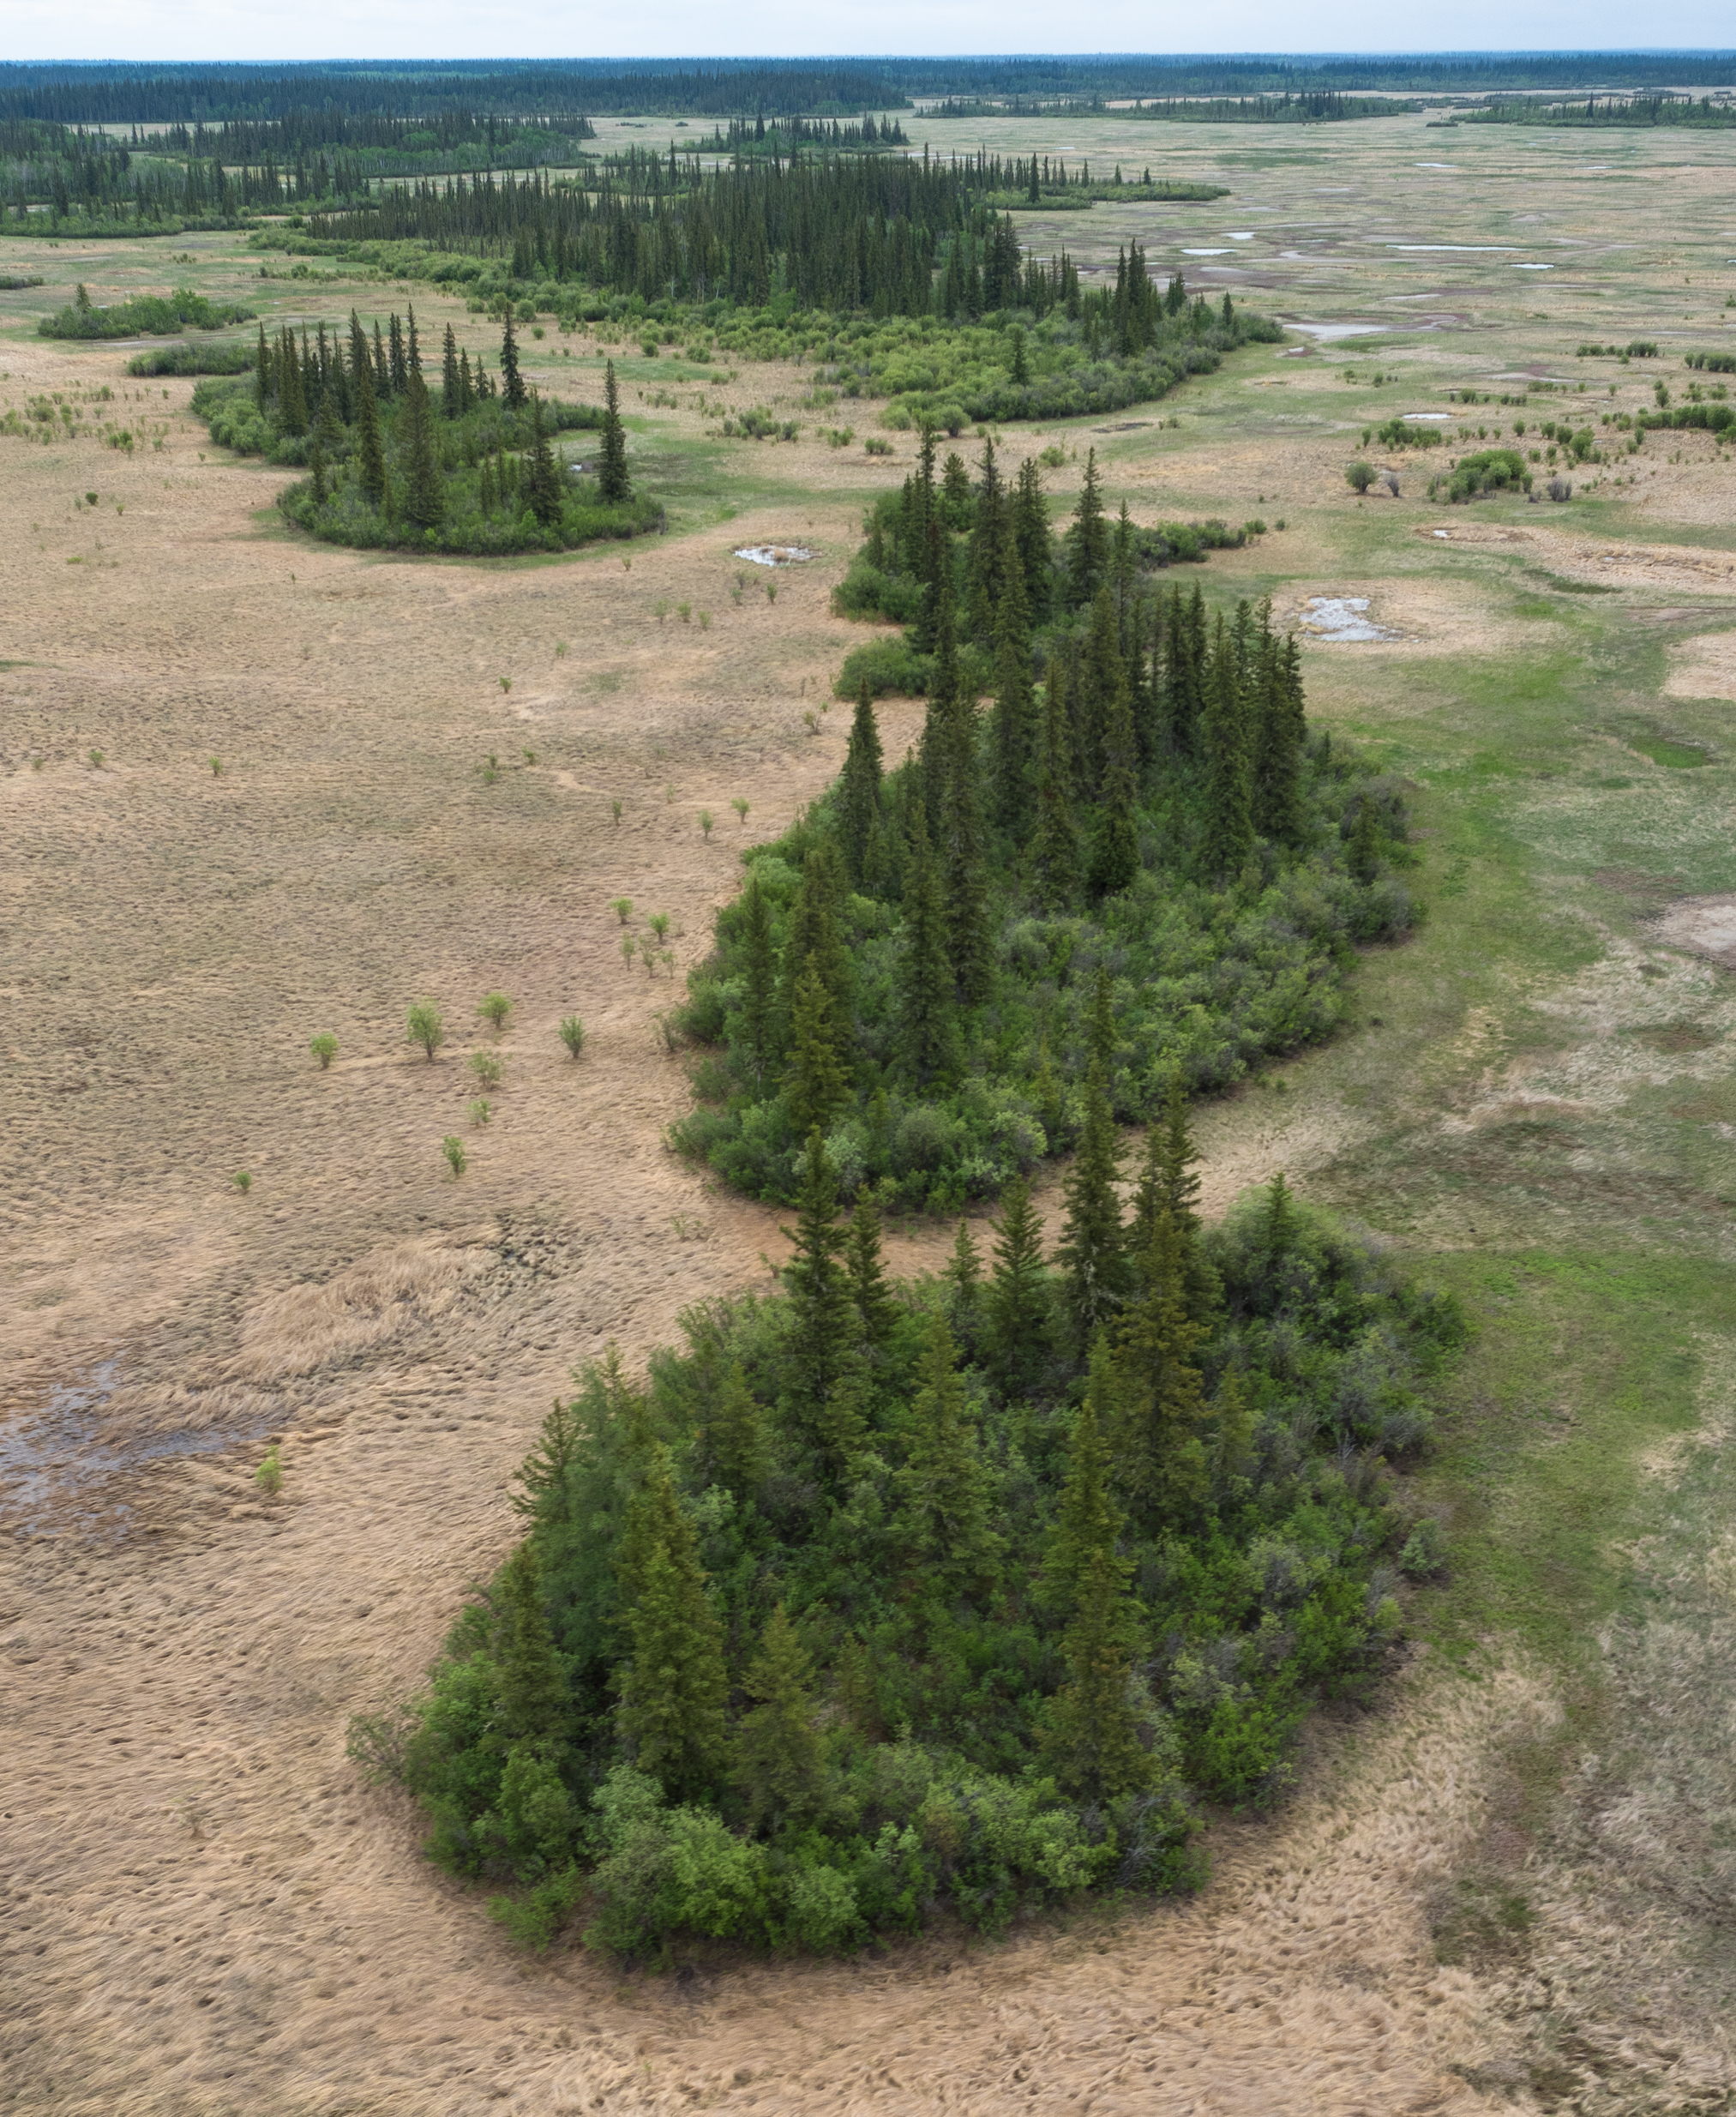 Tree islands, evidence of lowering water levels in Wood Buffalo National Park. Credits to: Louis Bockner/Sierra Club BC (CC BY-NC 2.0) [156]Tree islands, evidence of lowering water levels in Wood Buffalo National Park. Credits to: Louis Bockner/Sierra Club BC (CC BY-NC 2.0) [156]